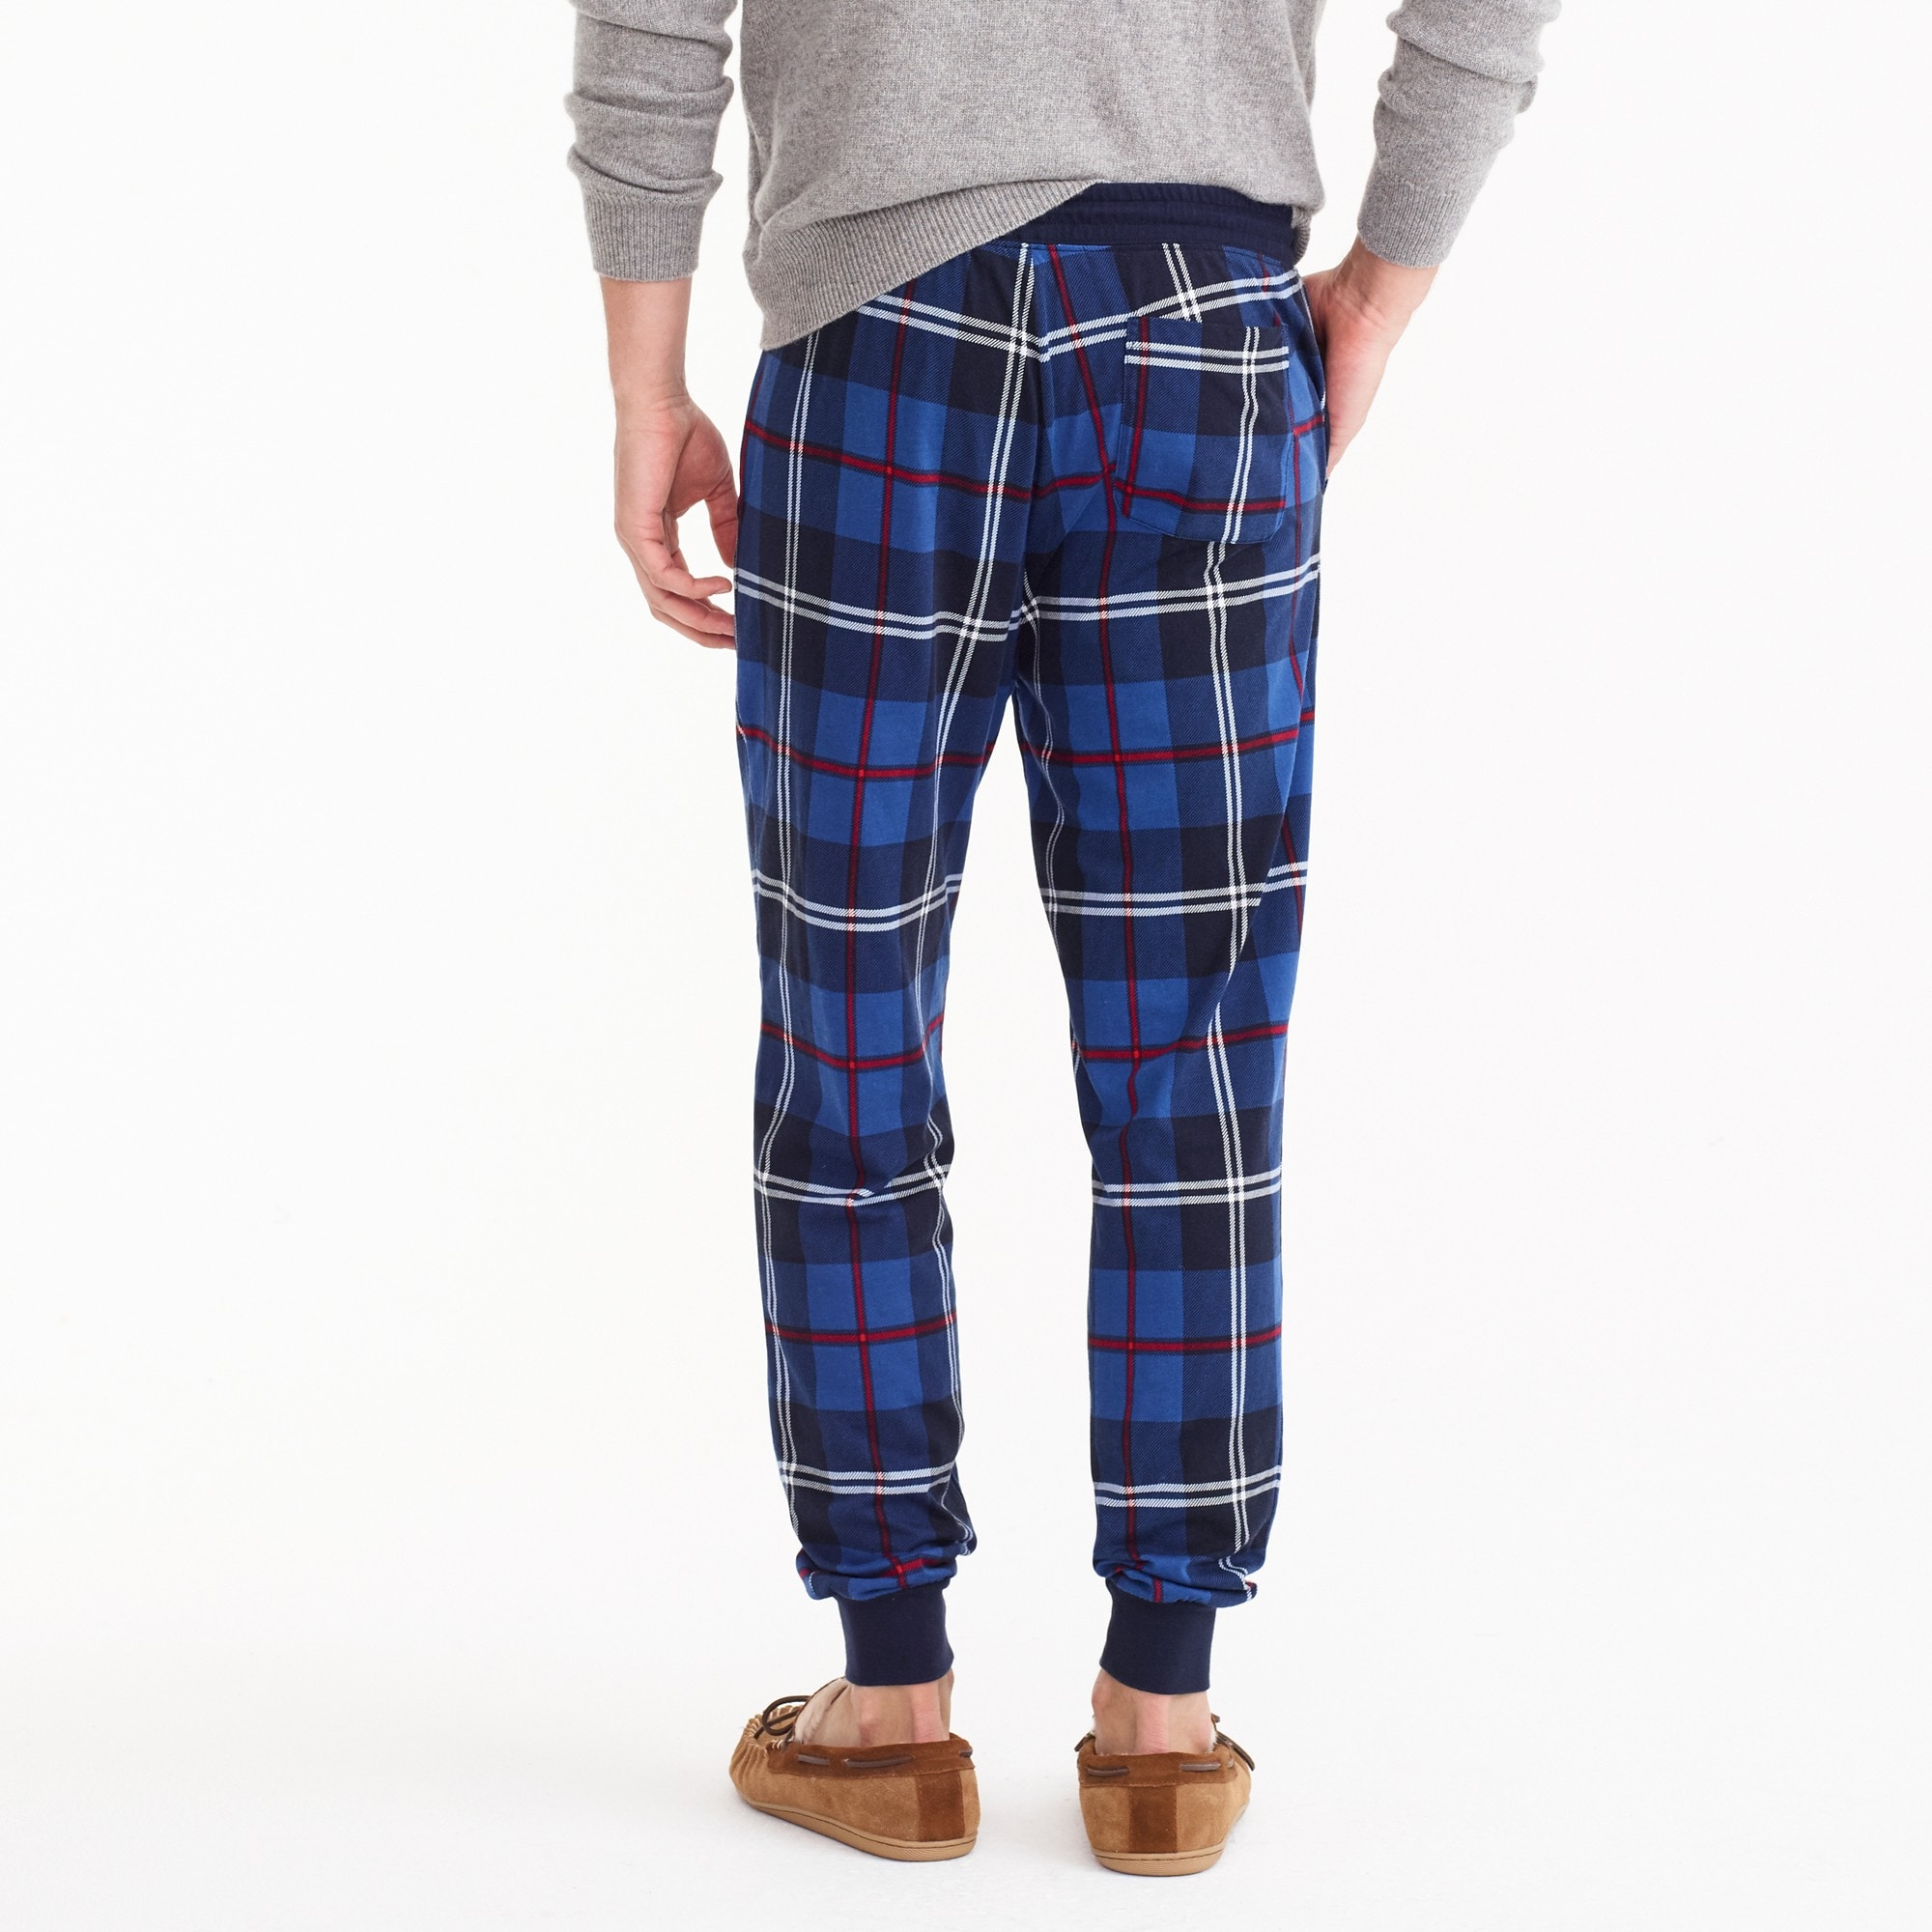 Image 4 for Flannel lounge pant